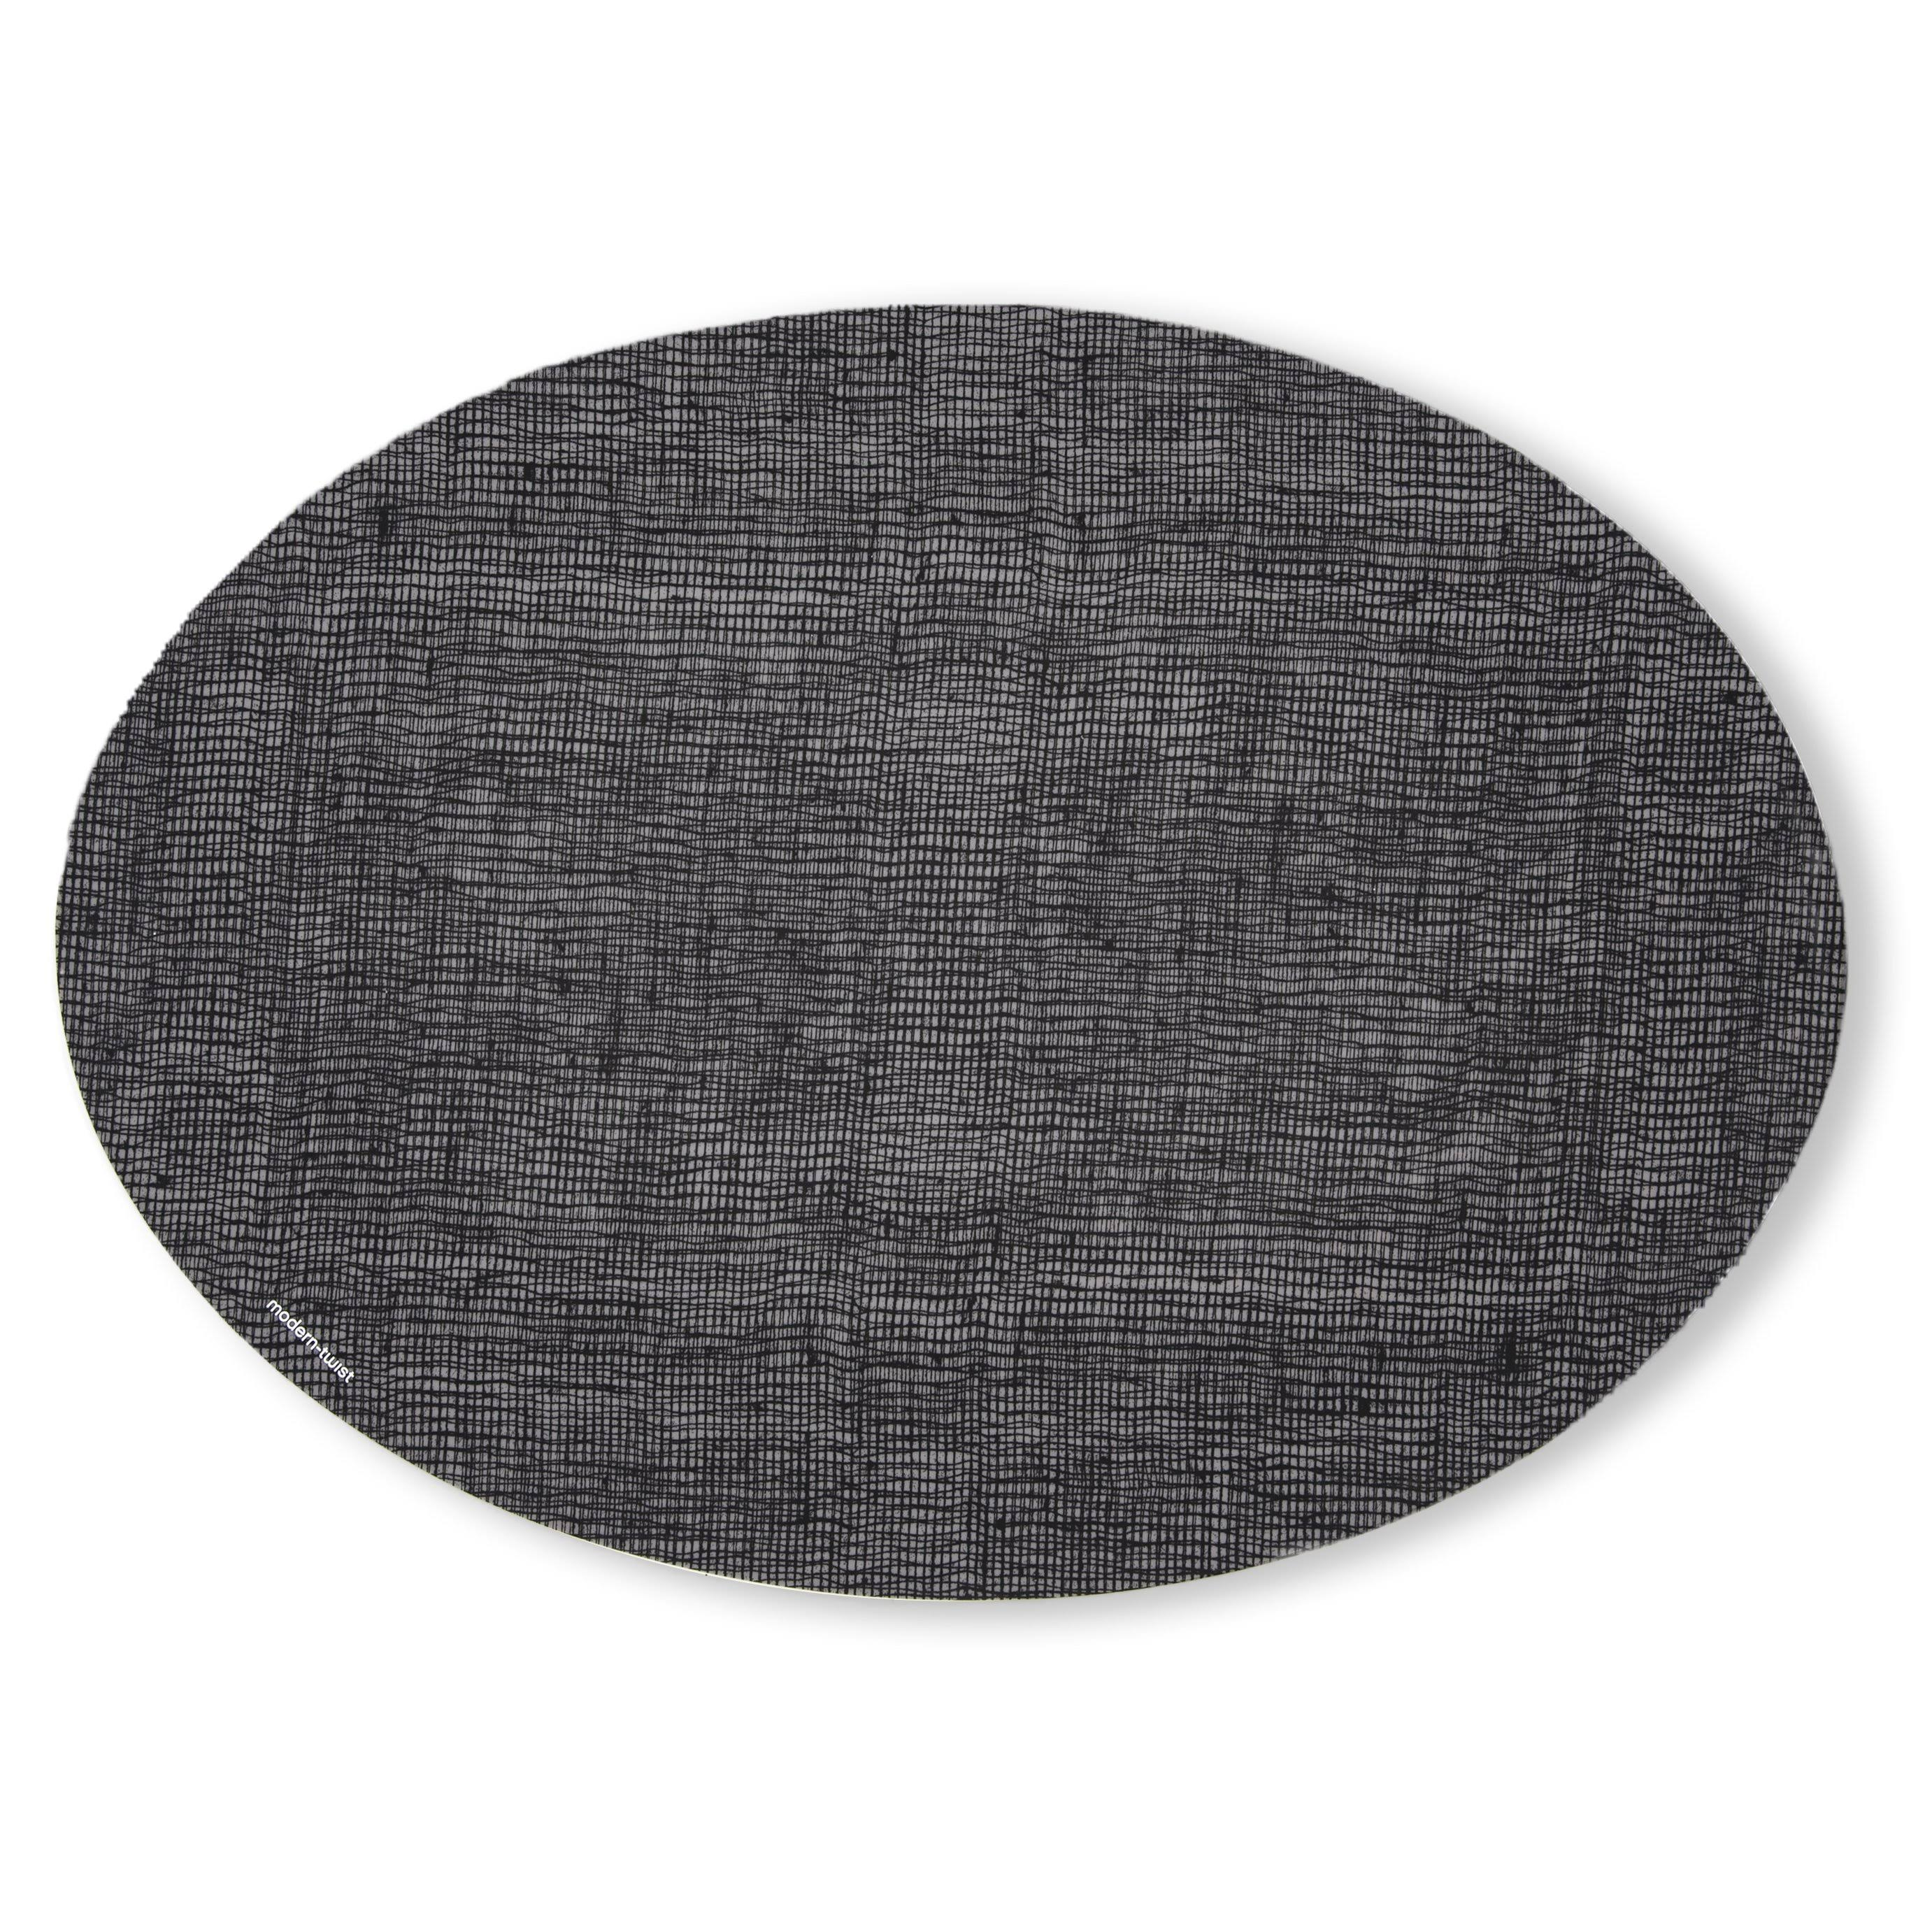 modern-twist Silicone Placemat, Cocoon Pattern,, Linen - Black